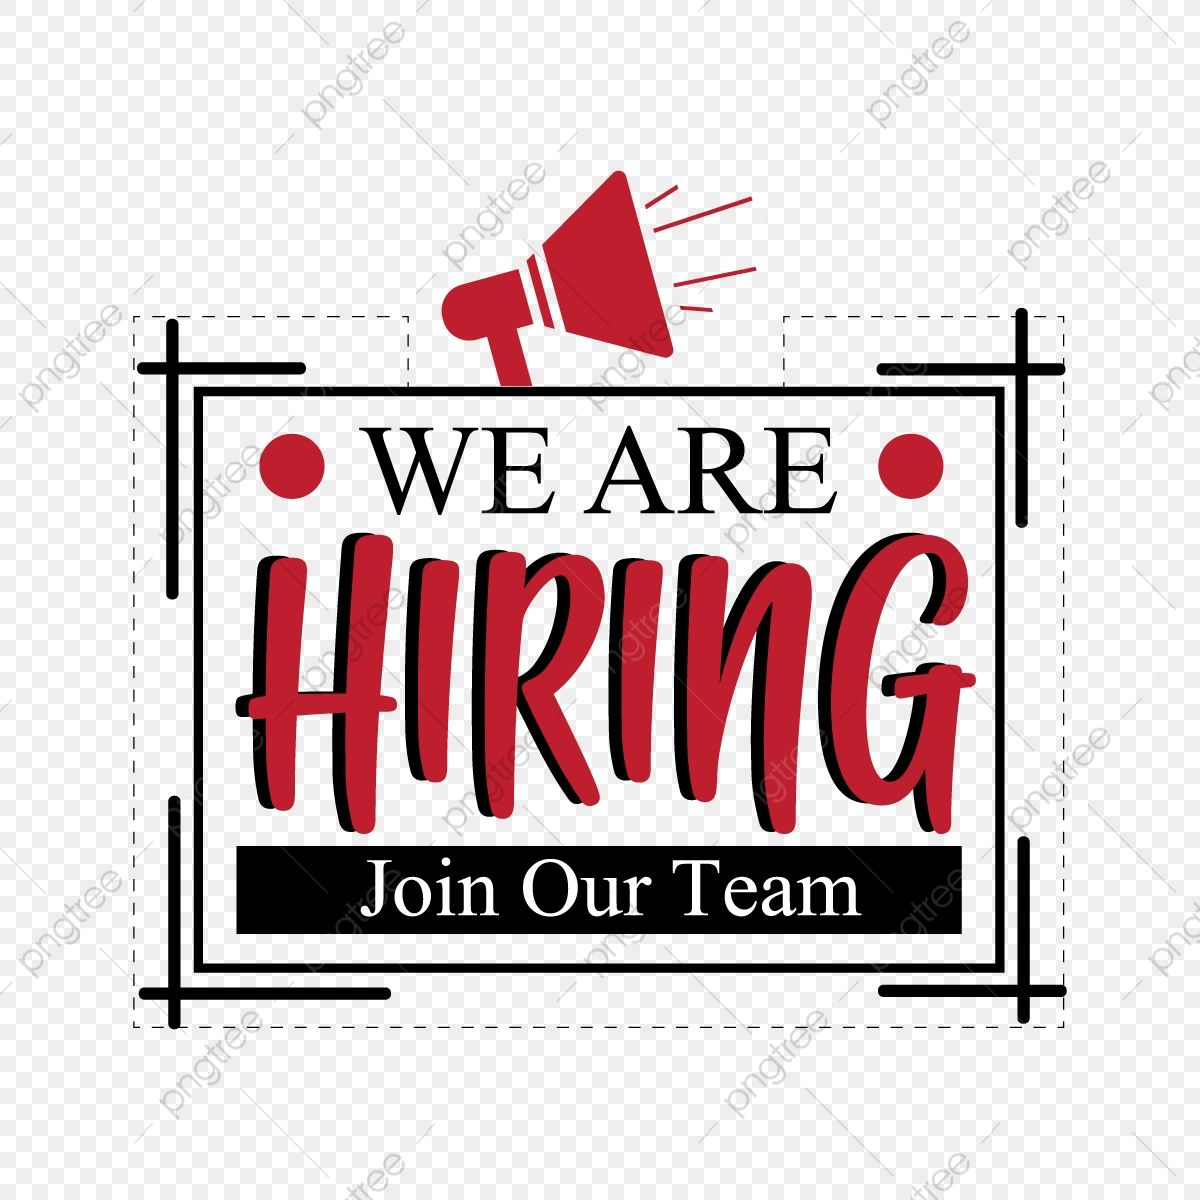 We Are Hiring Png Vector Background Design We Are Hiring Png Images We Are Hiring Vector Were Hiring Png Png And Vector With Transparent Background For Free We Are Hiring